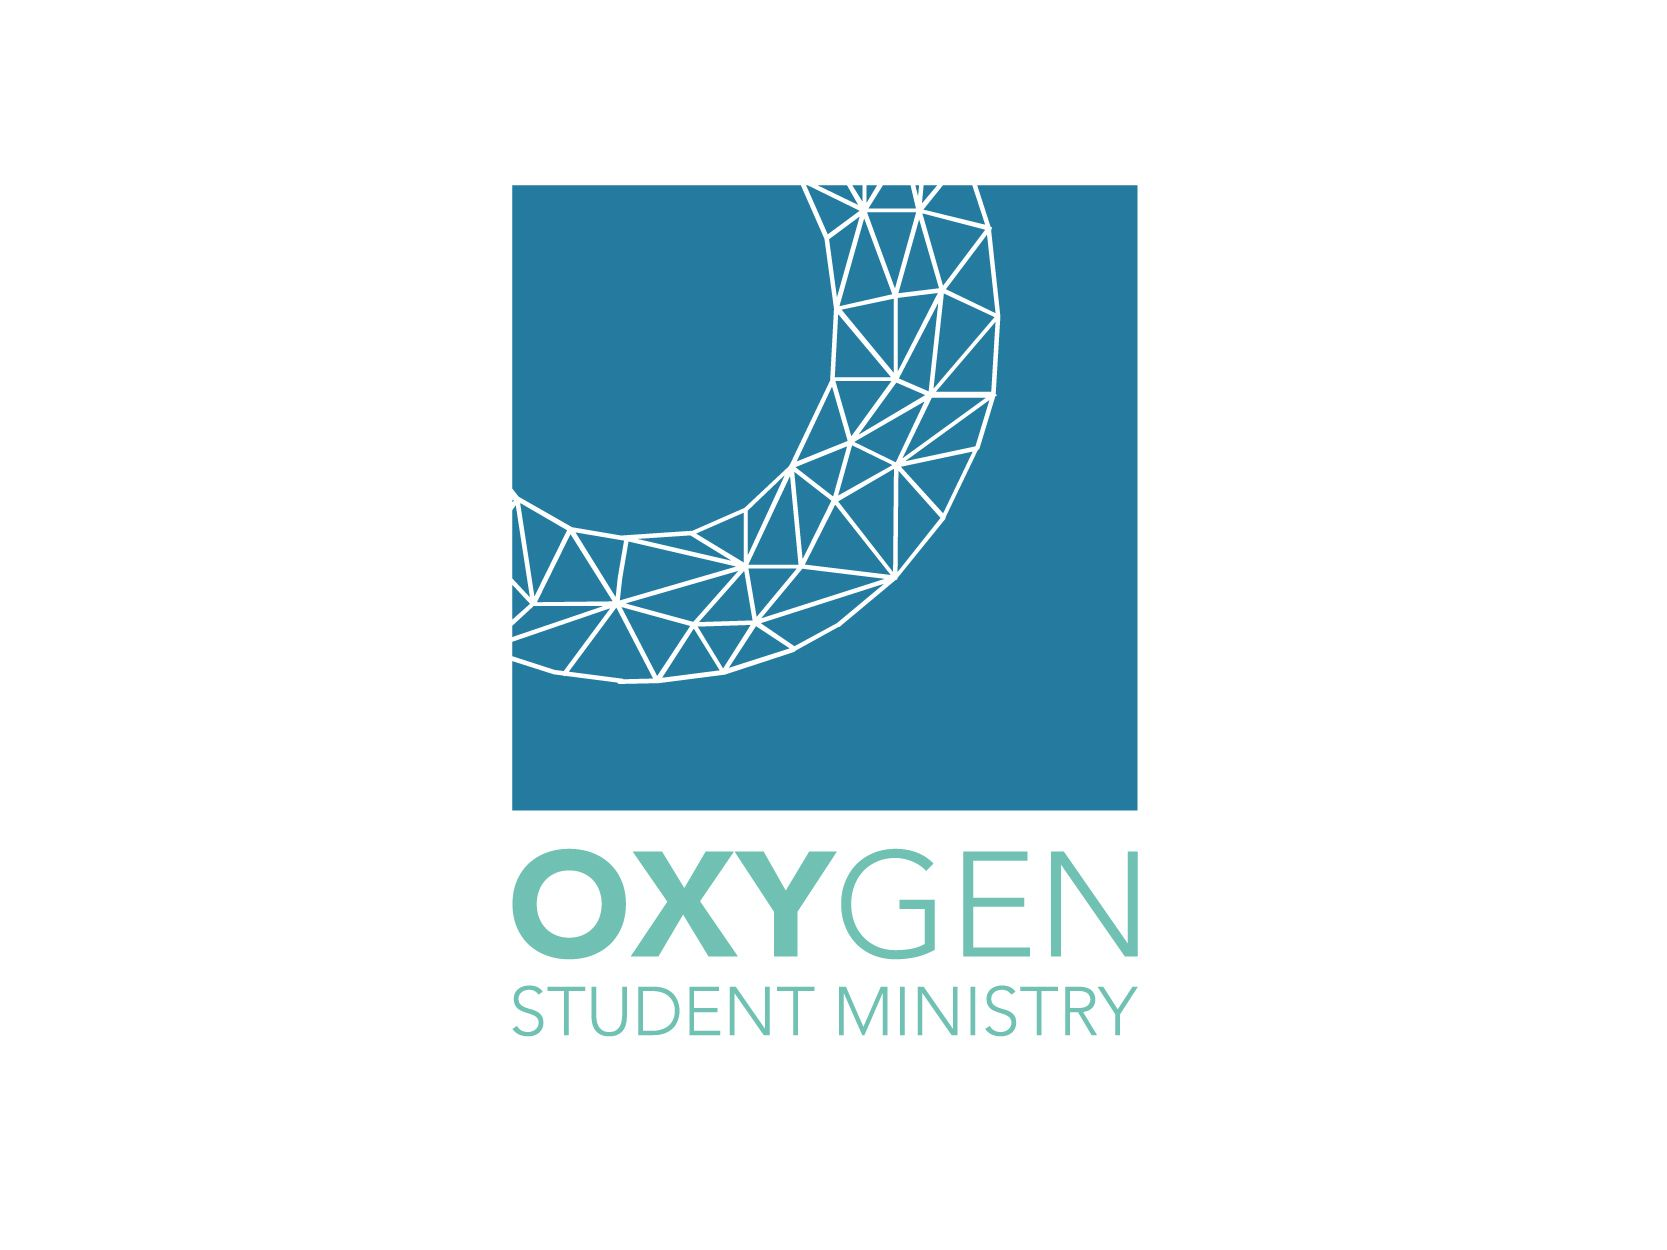 Oxygen Student Ministry - Youth Group Logos | Logo ...